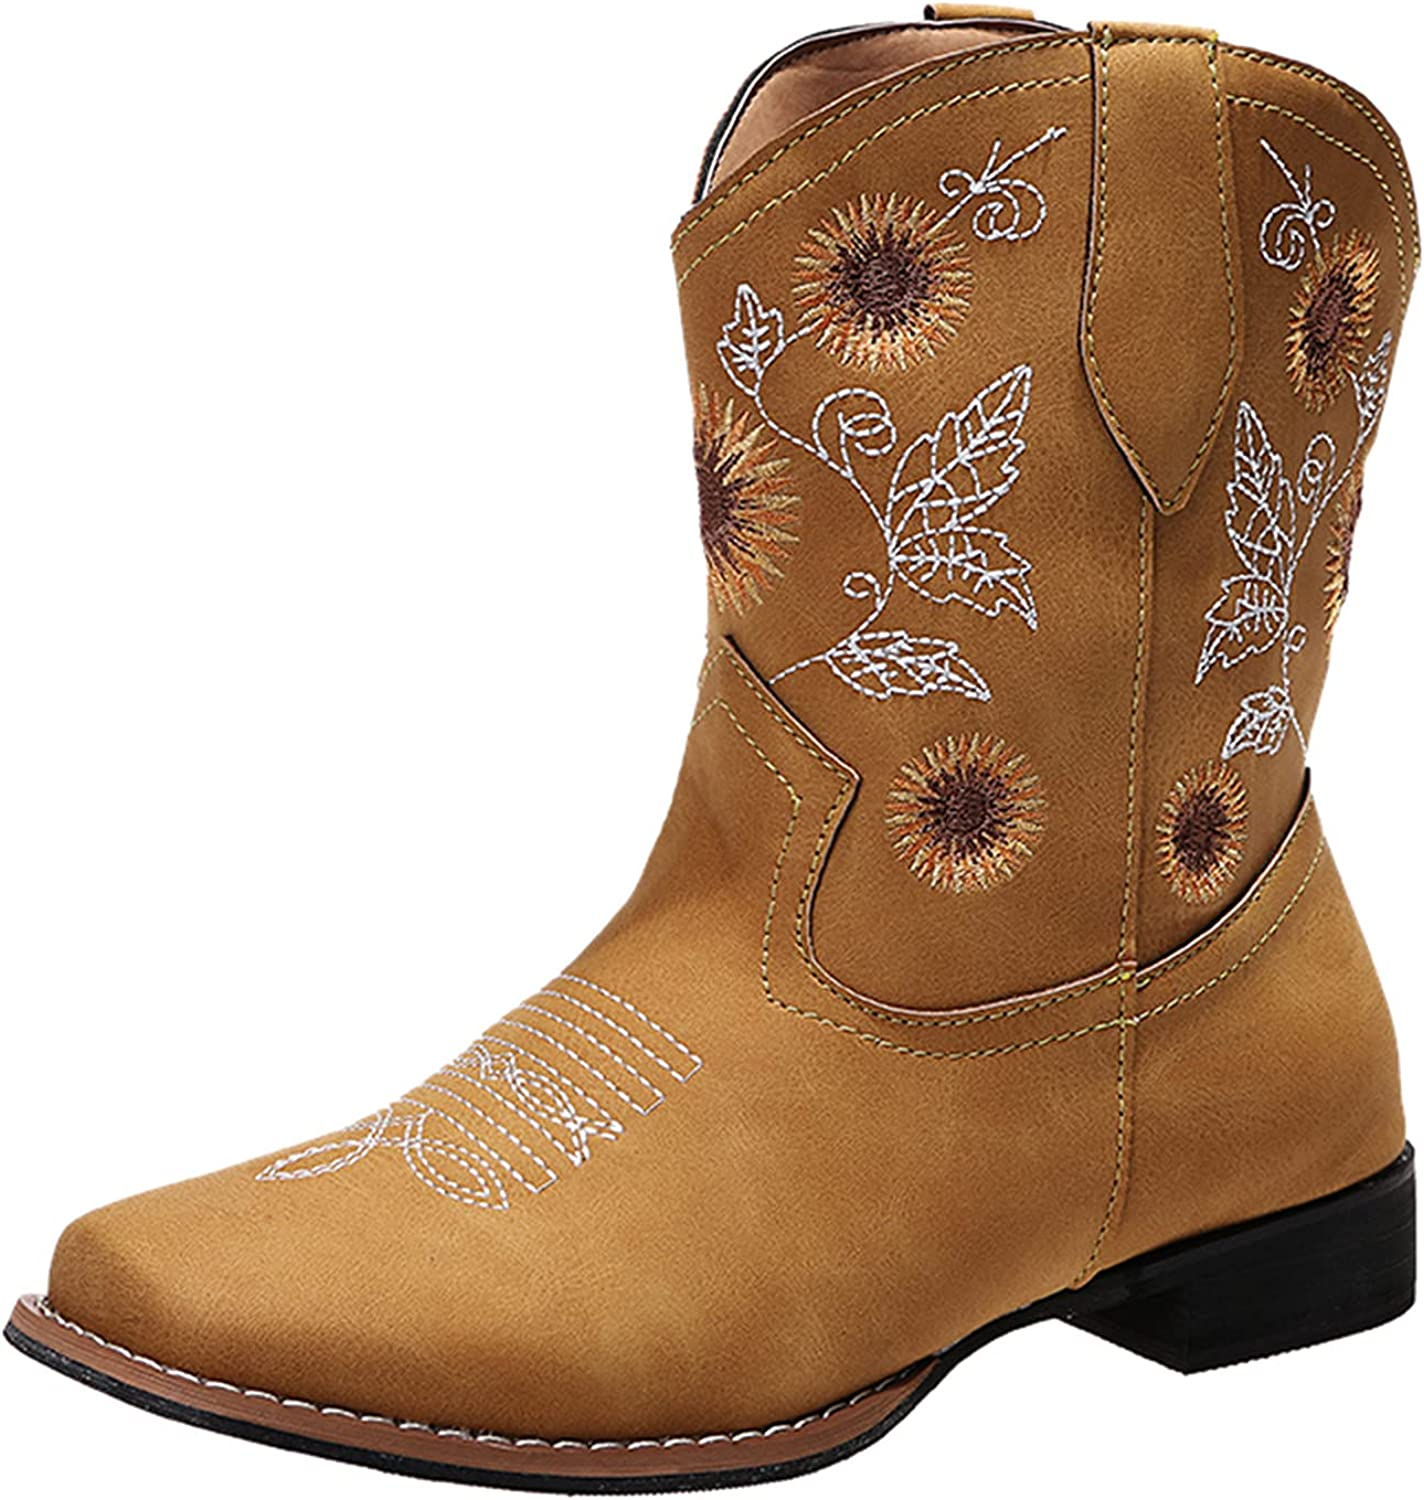 Women'S Knee-High Boots price Surprise price Western Ridin Cowboy Women Cowgirl